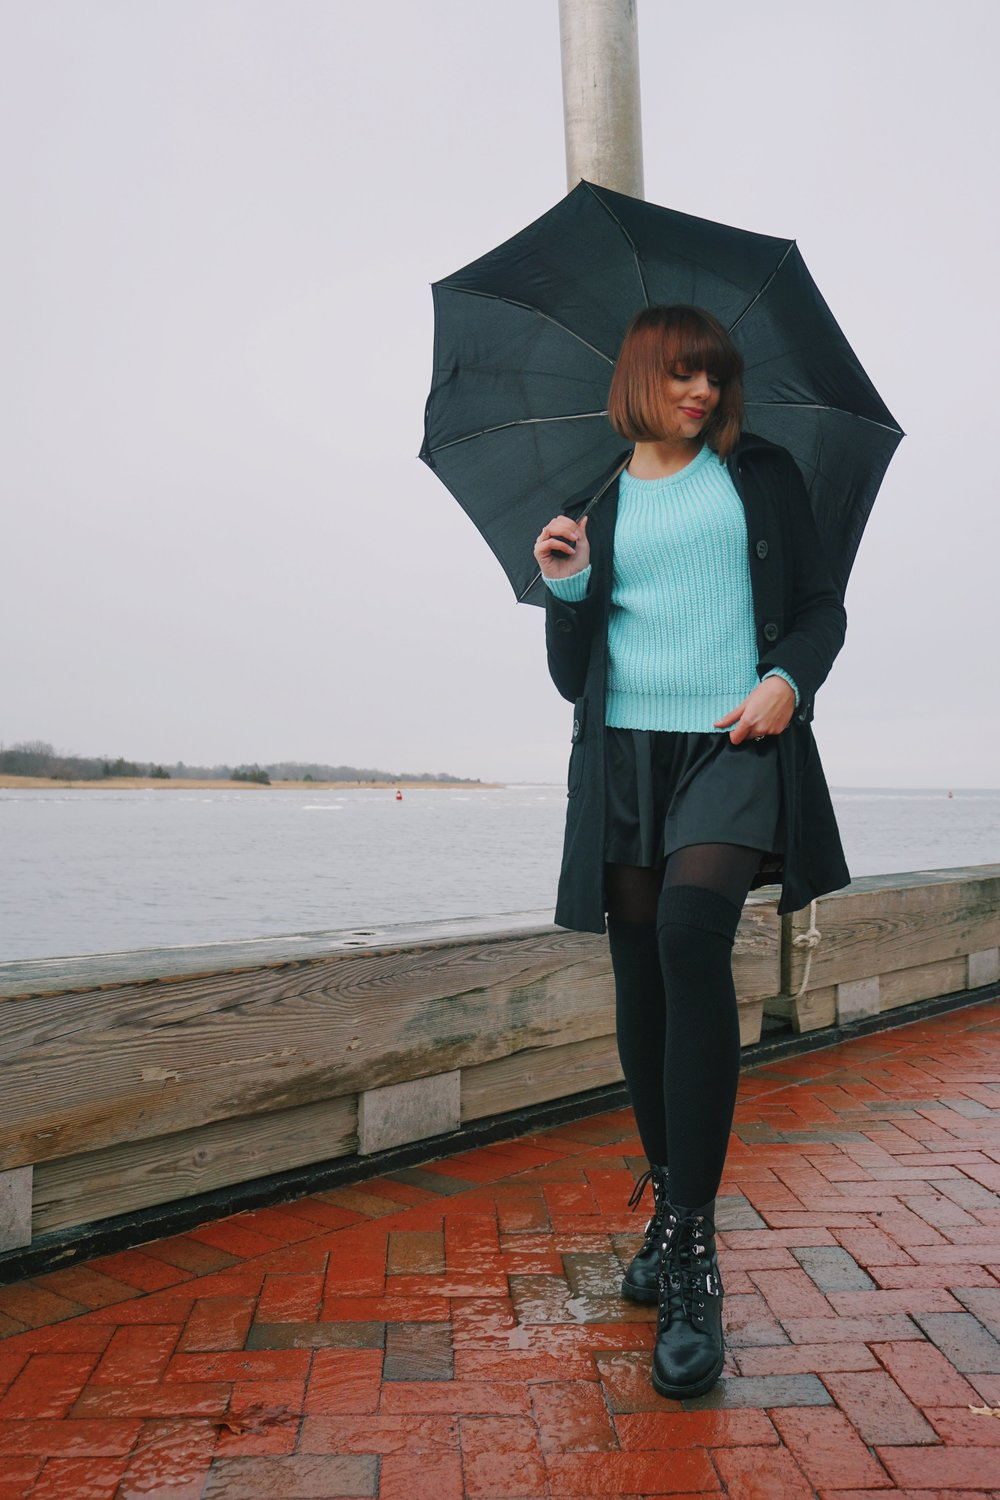 Girl posing near the ocean, wearing a cute winter outfit.